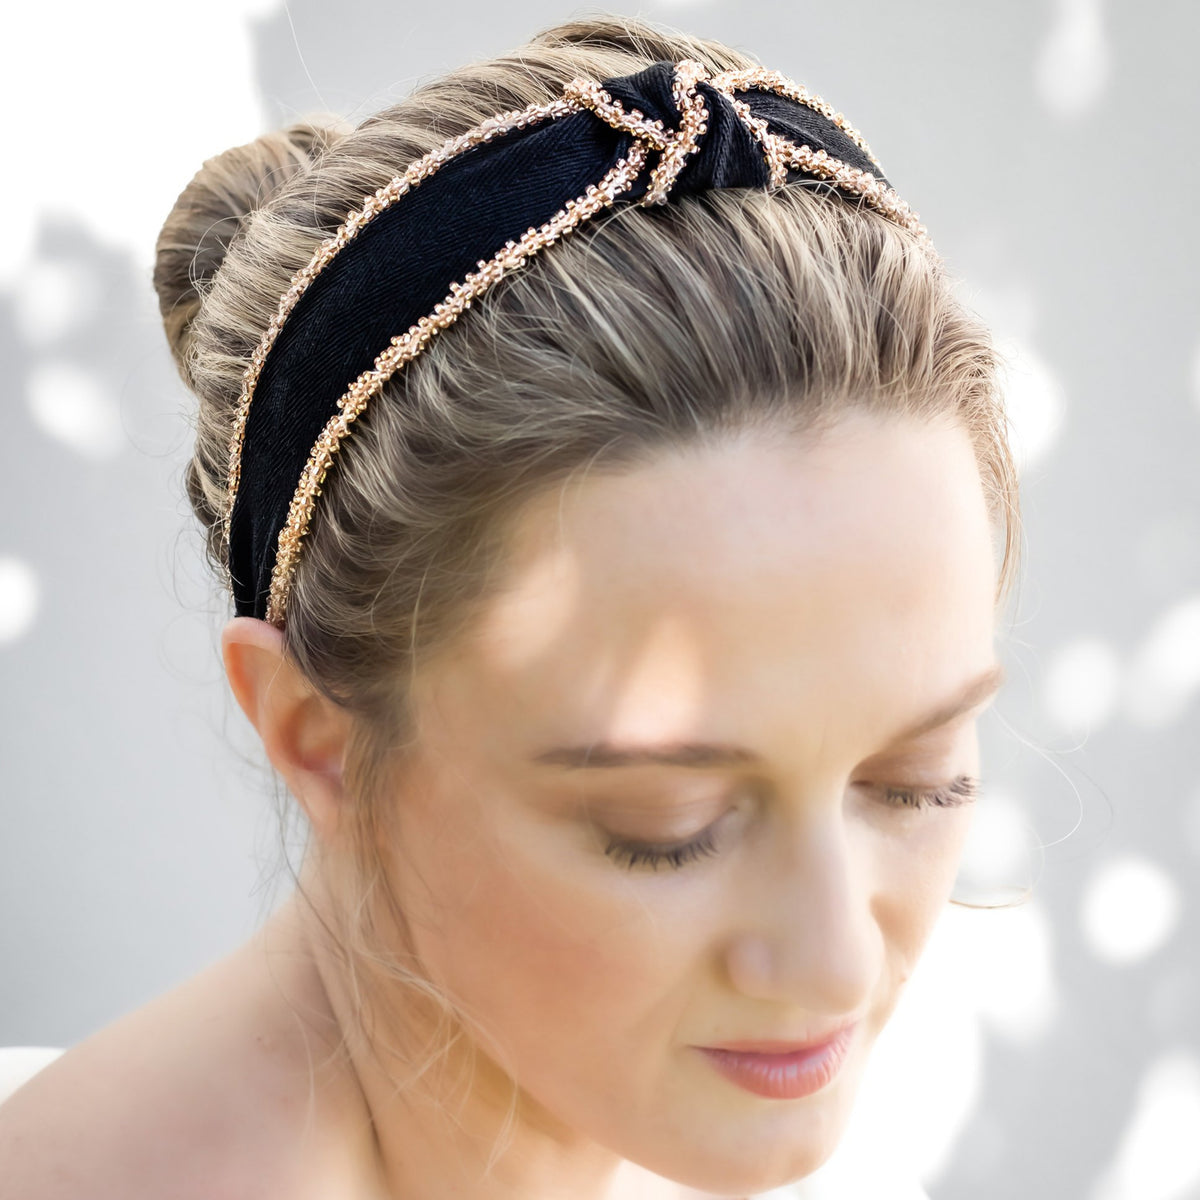 Headbands by IDALIA - Margot - Black Trim